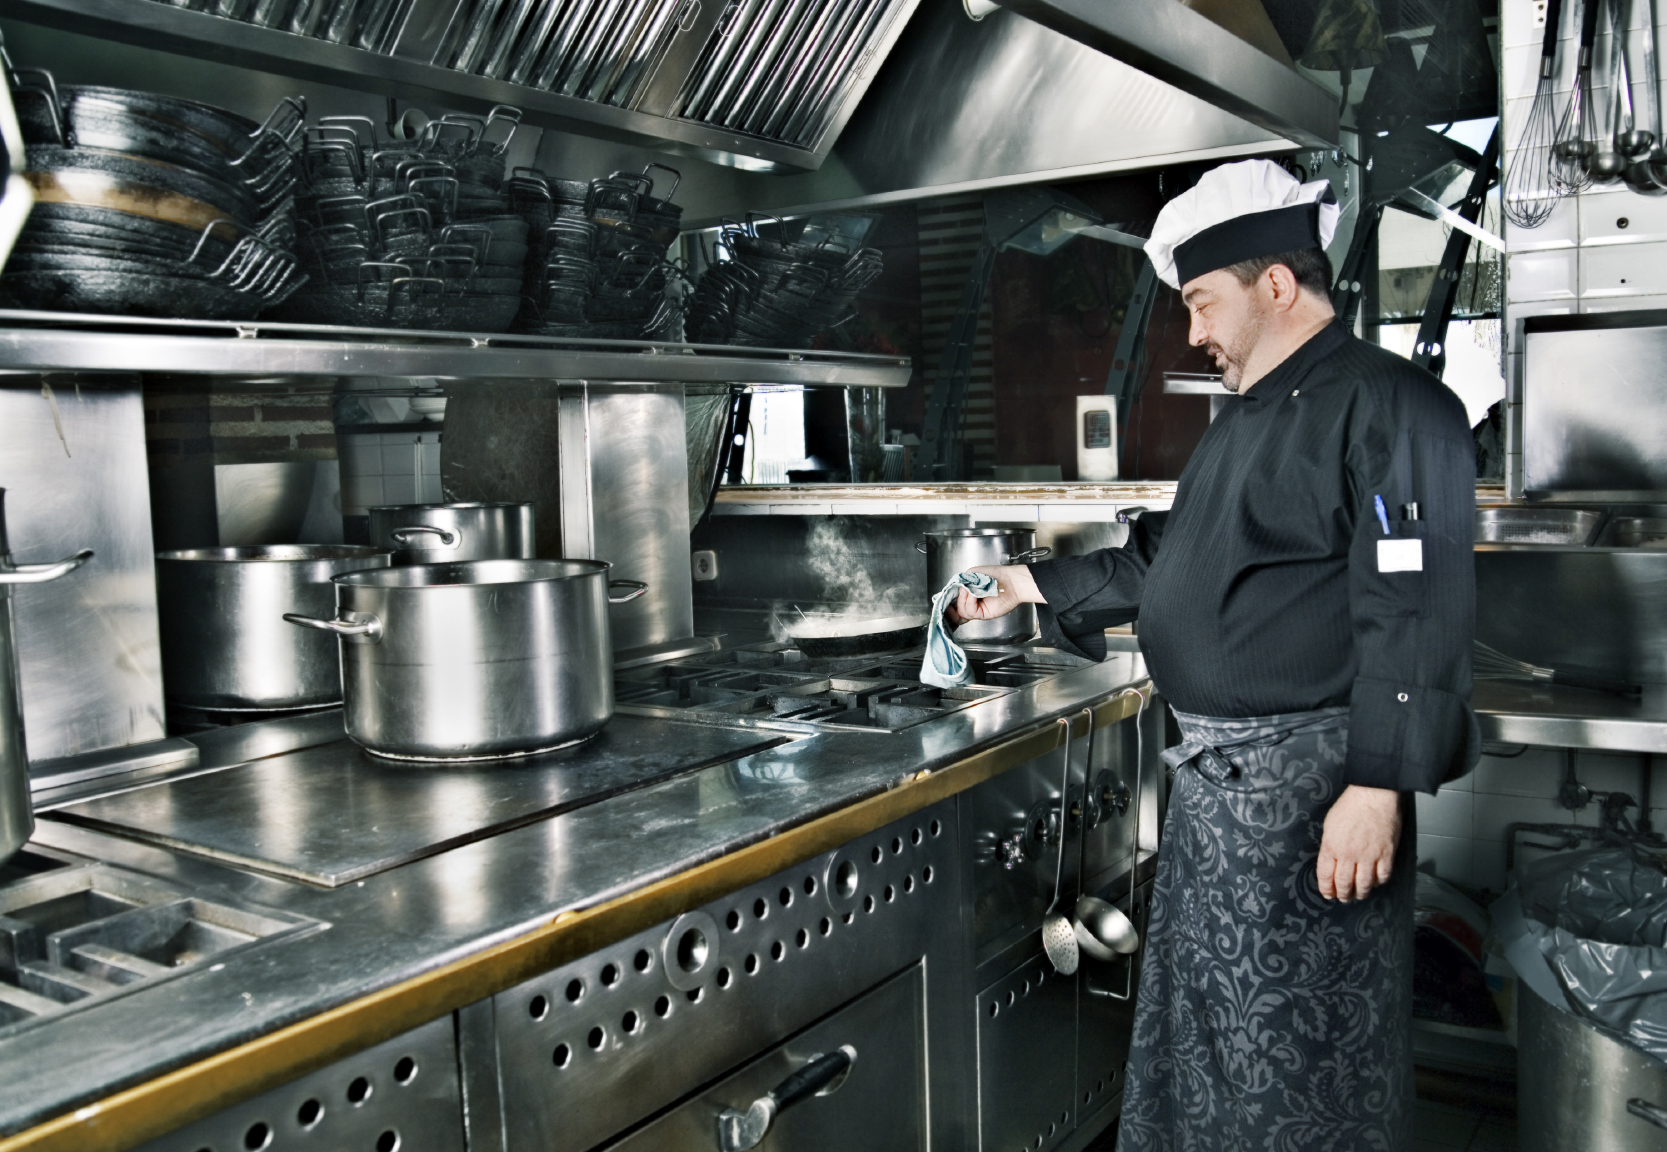 TigerChef Describes Cutting Edge Commercial Kitchen Equipment